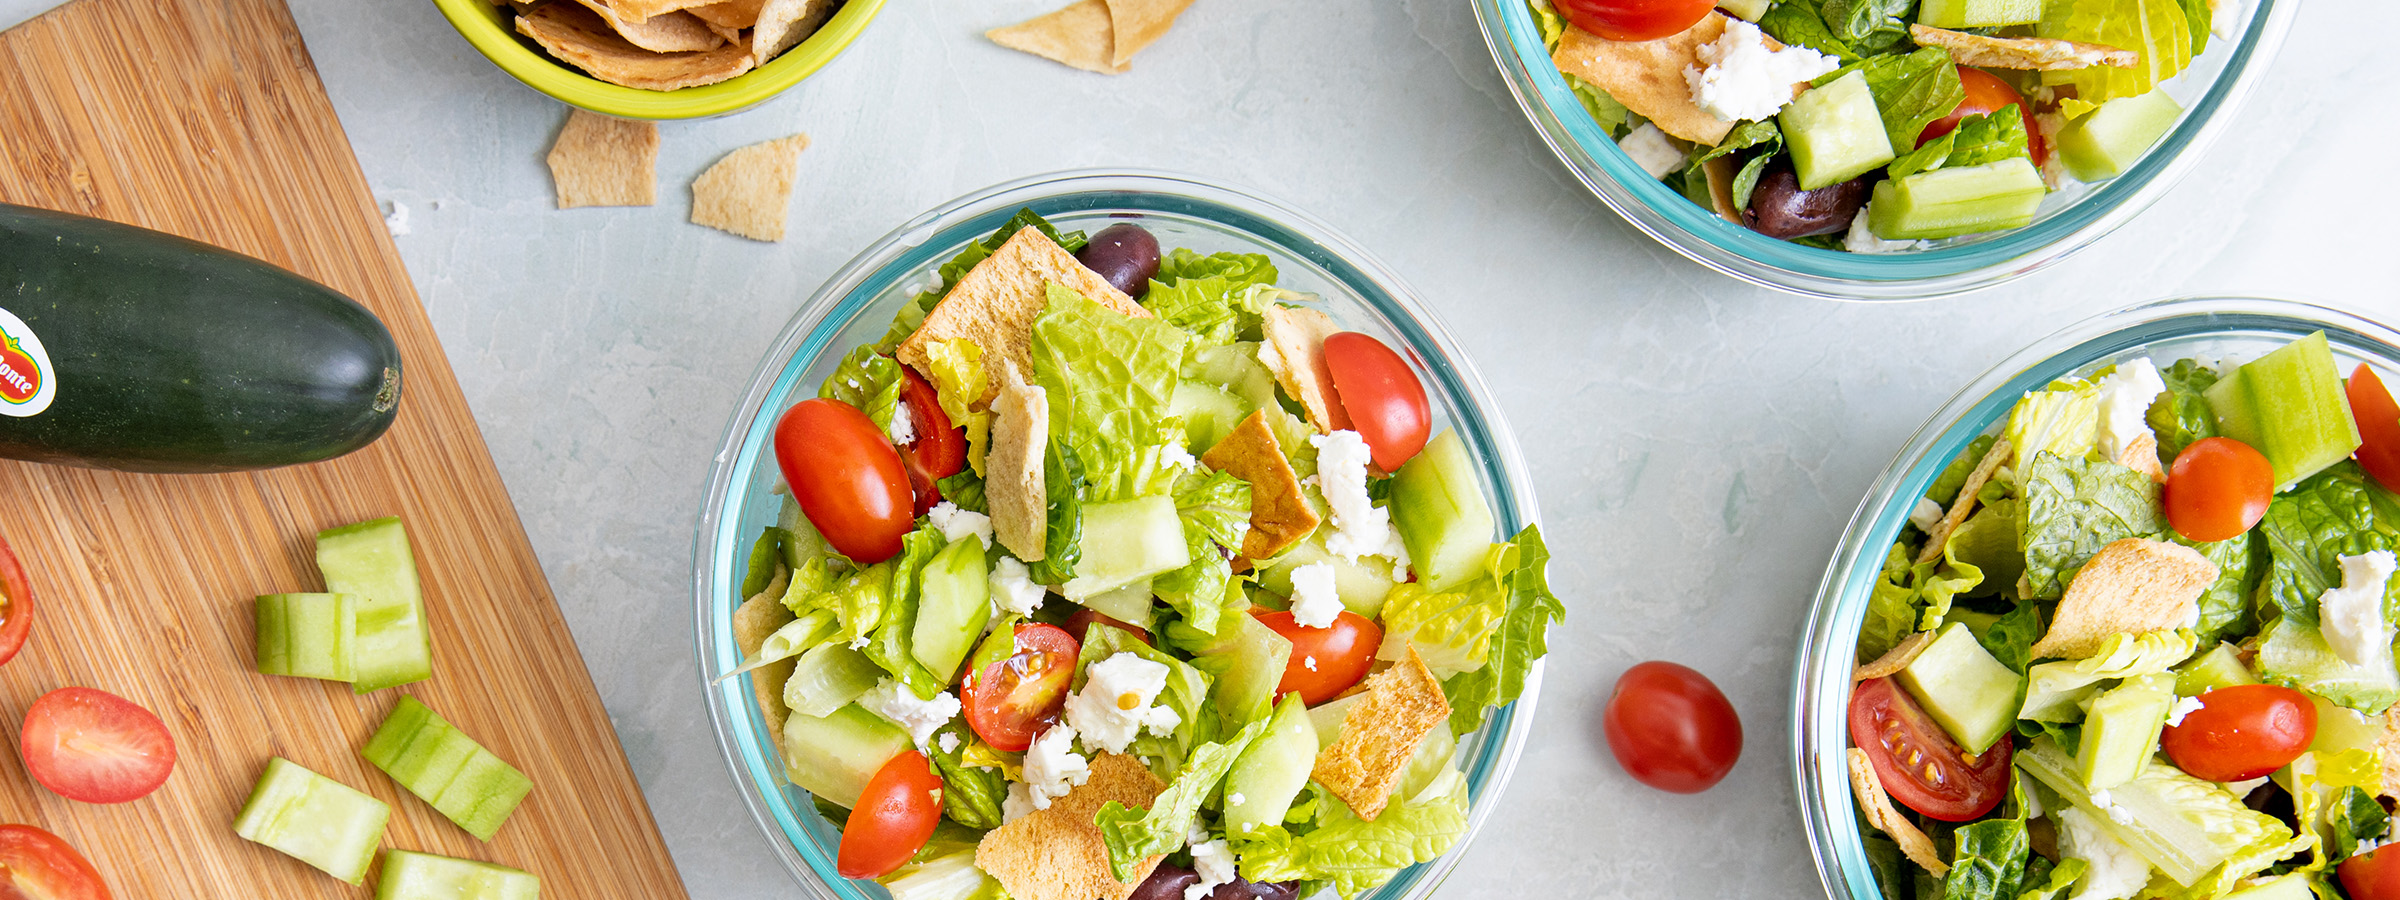 Homepage-Banner_Try-Our-Recipes_Mediterranean-Pita-Salad_April-2020